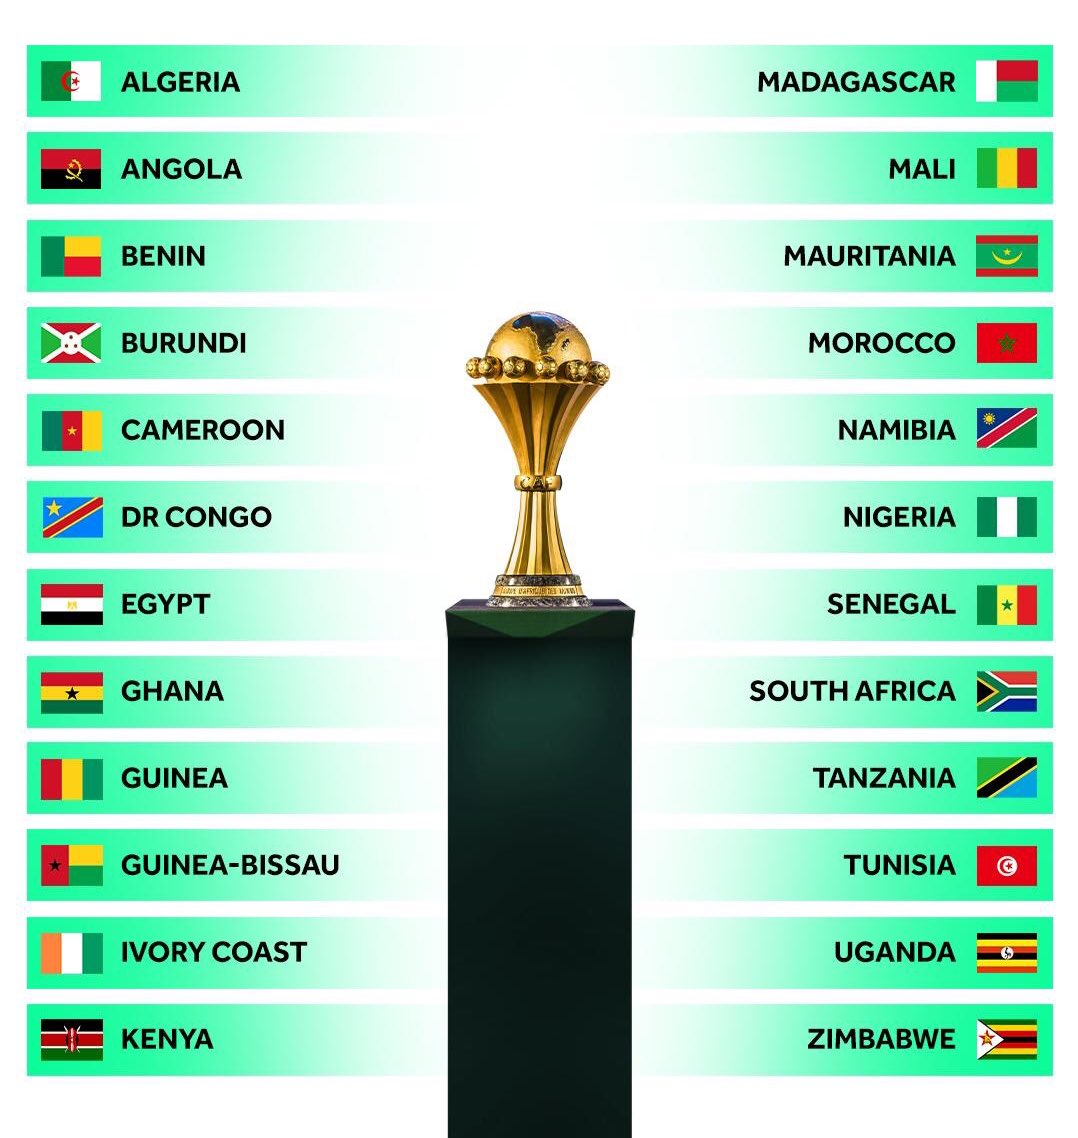 Qualified teams for 2019 African Cup of Nations